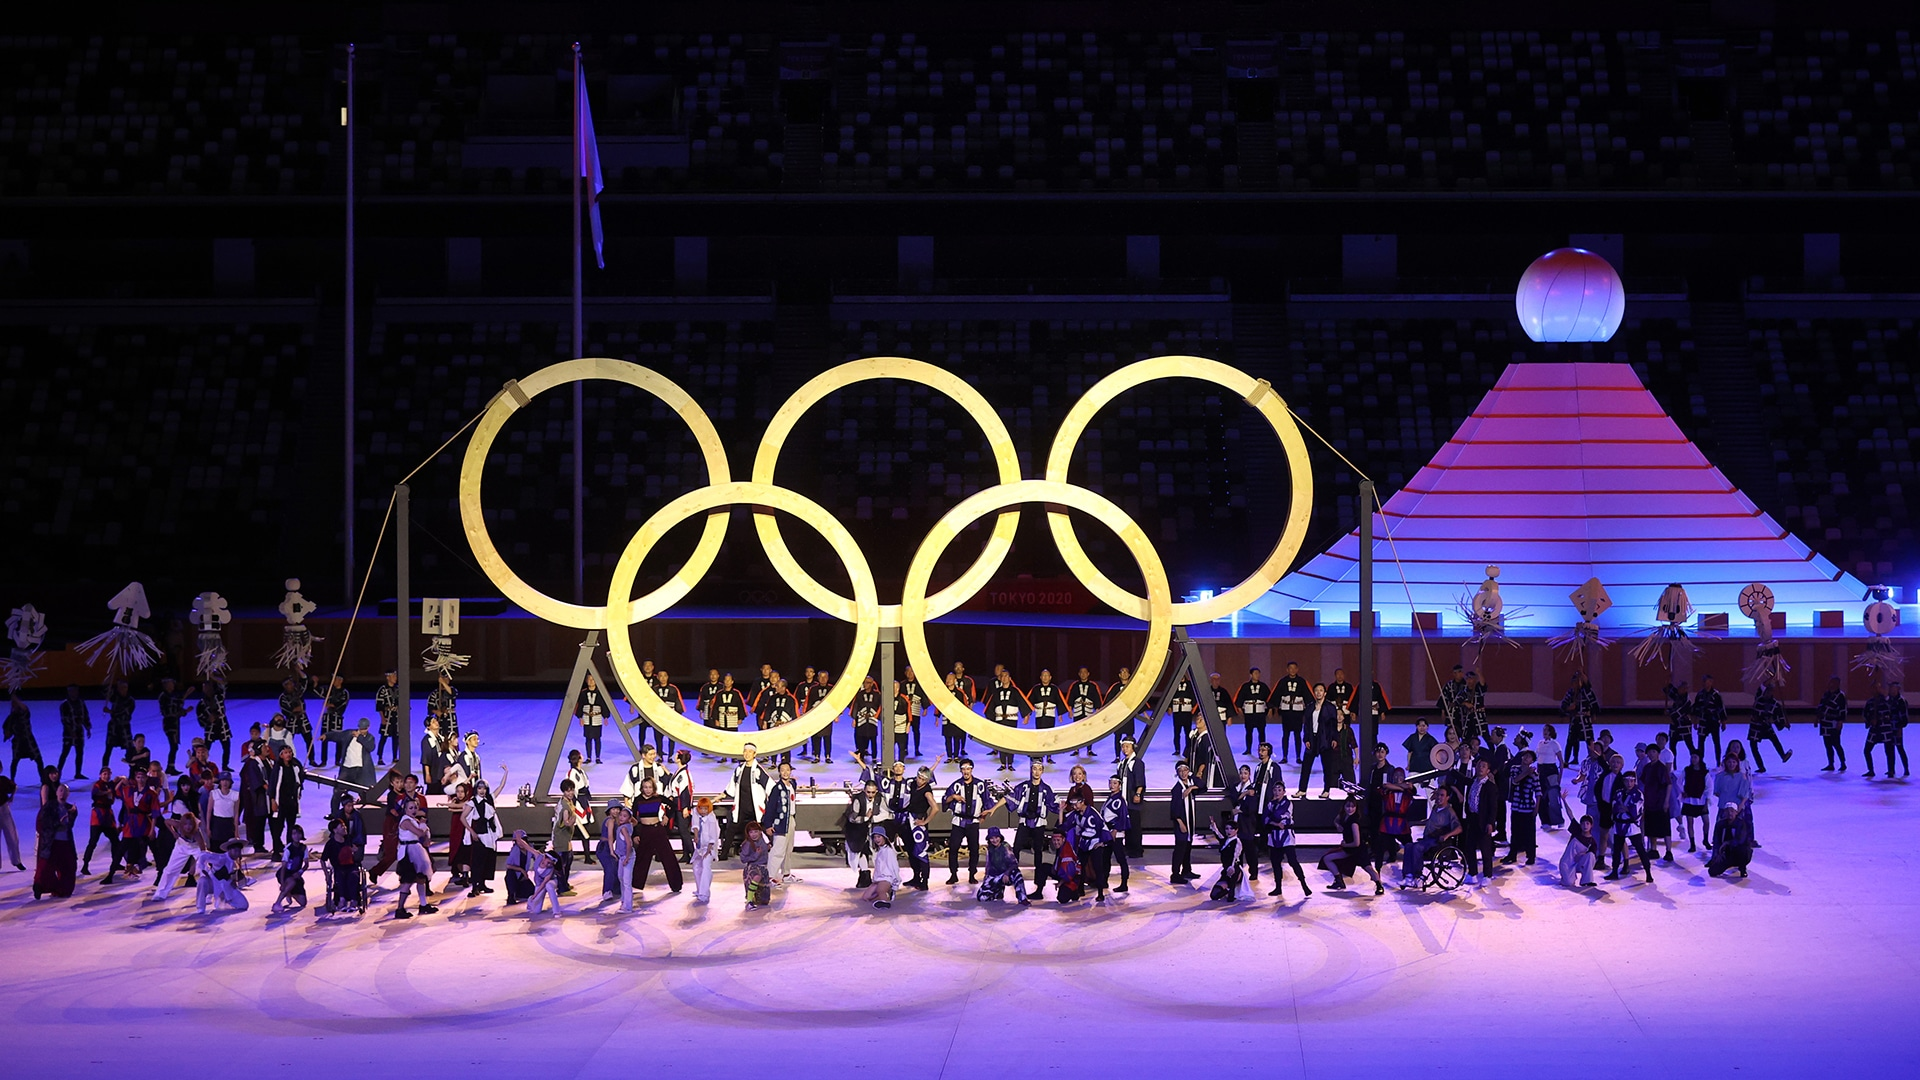 The Olympic rings are shown during the Tokyo Olympics Opening Ceremony. (credit: Getty Images)